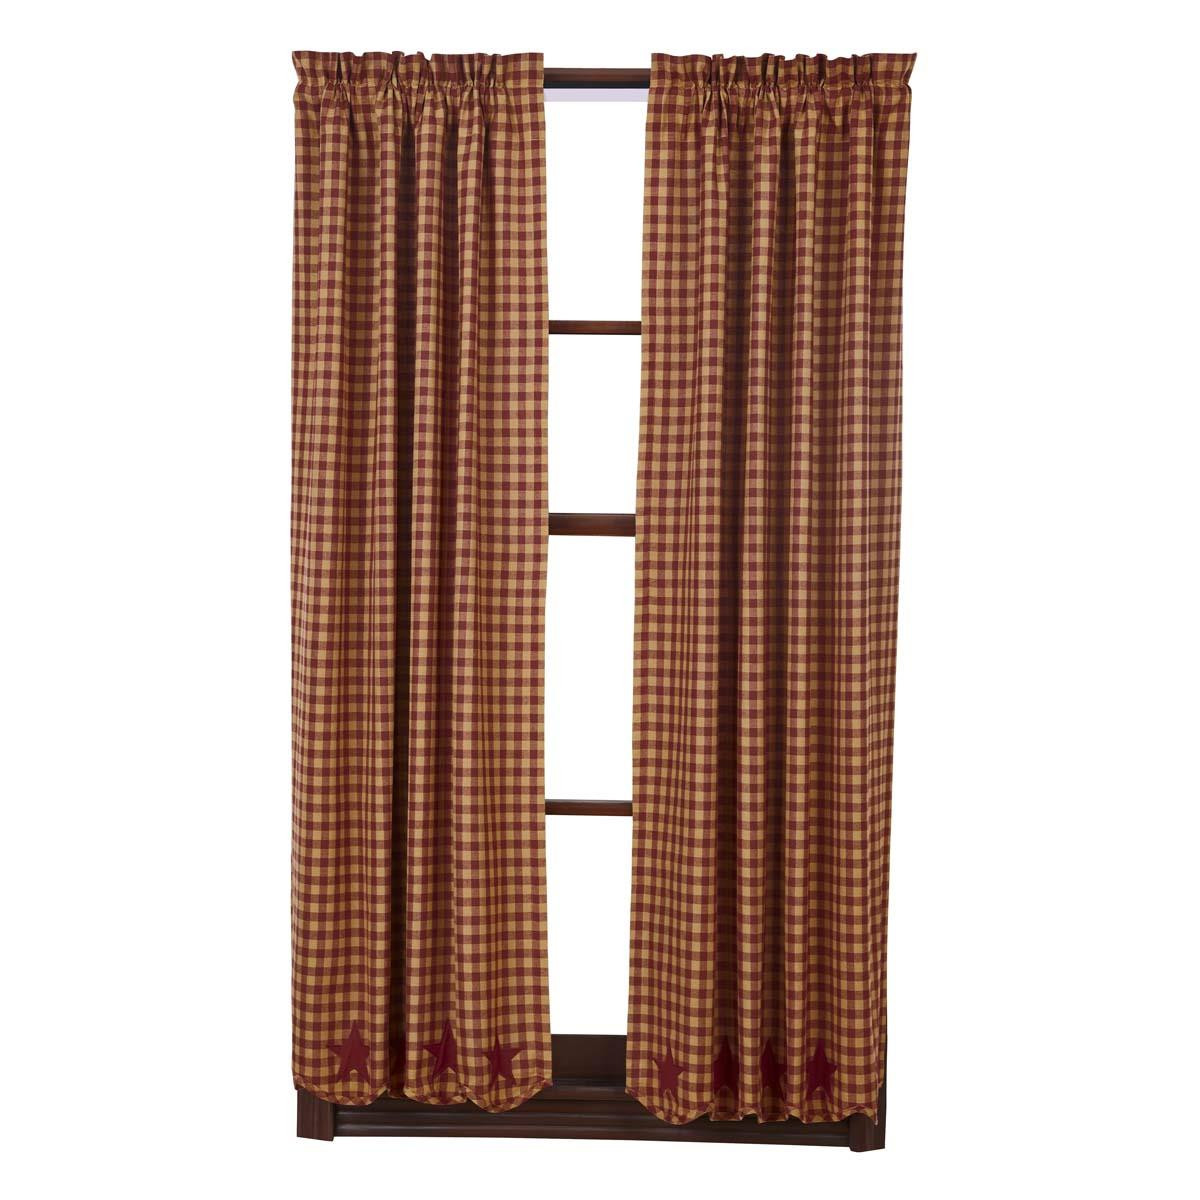 Burgundy Star Short Curtains - 840528111112